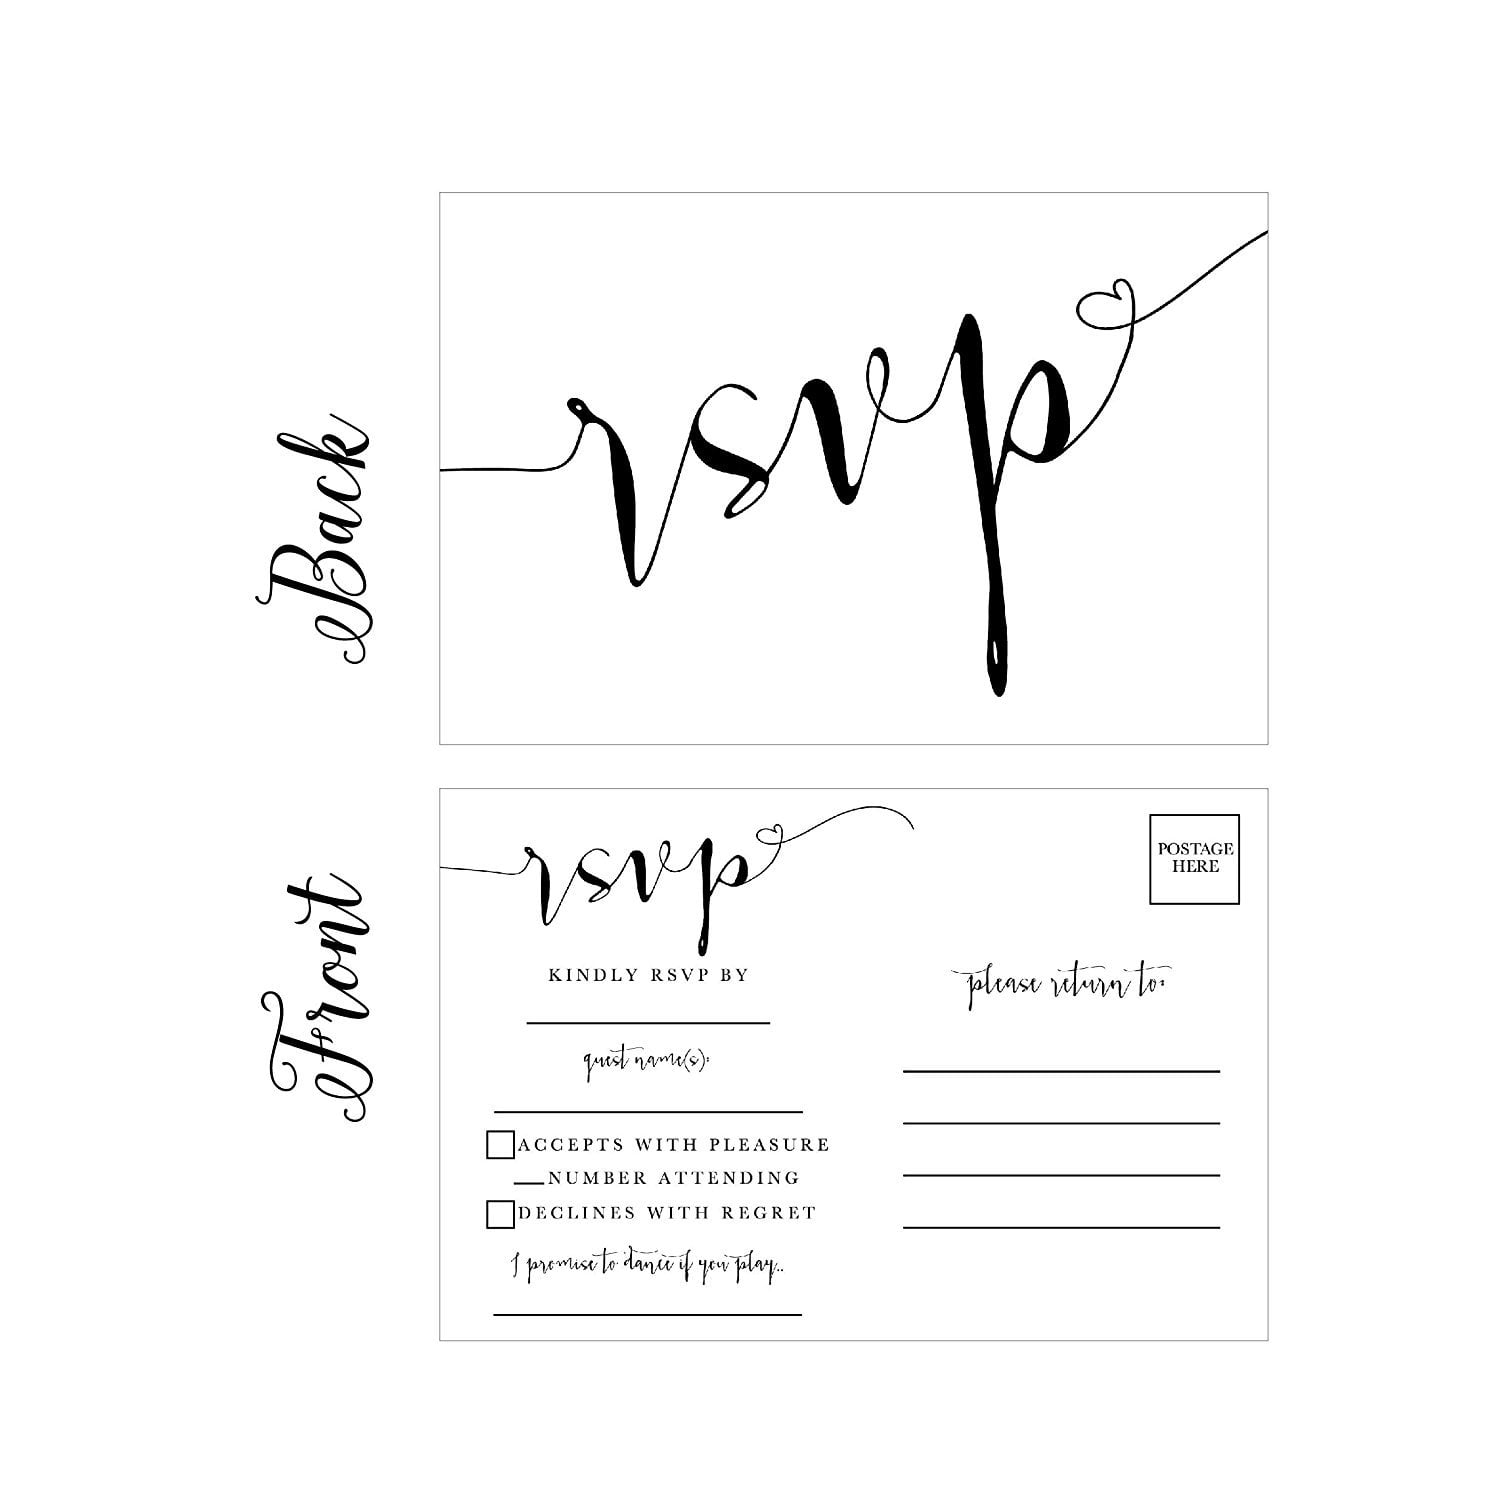 Wedding Invitation Postcard: 50 Blank RSVP Cards, RSVP Postcards No Envelopes Needed